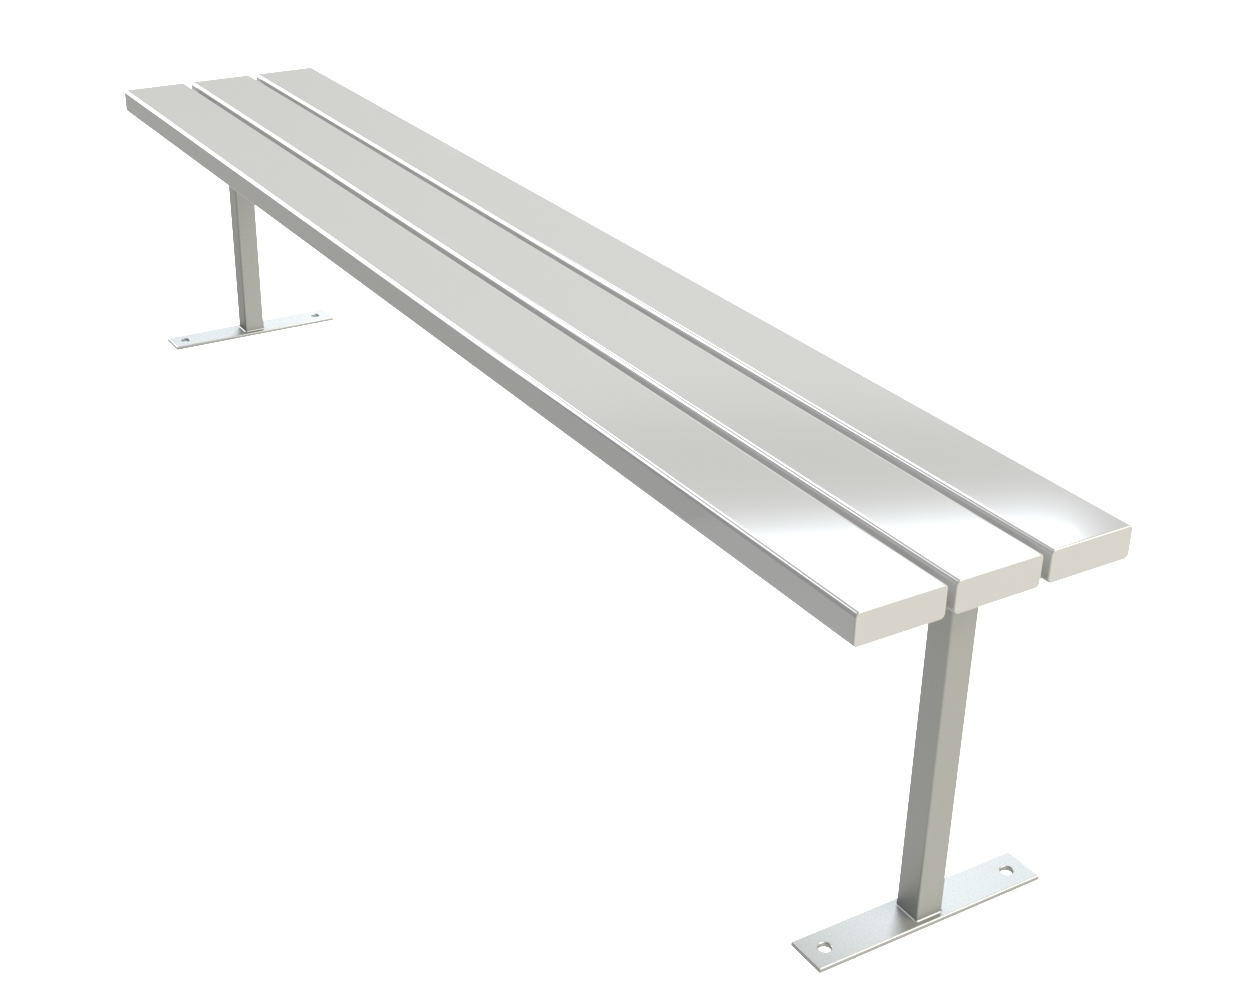 GALVANISED STEEL 3 RAIL BENCH SEAT